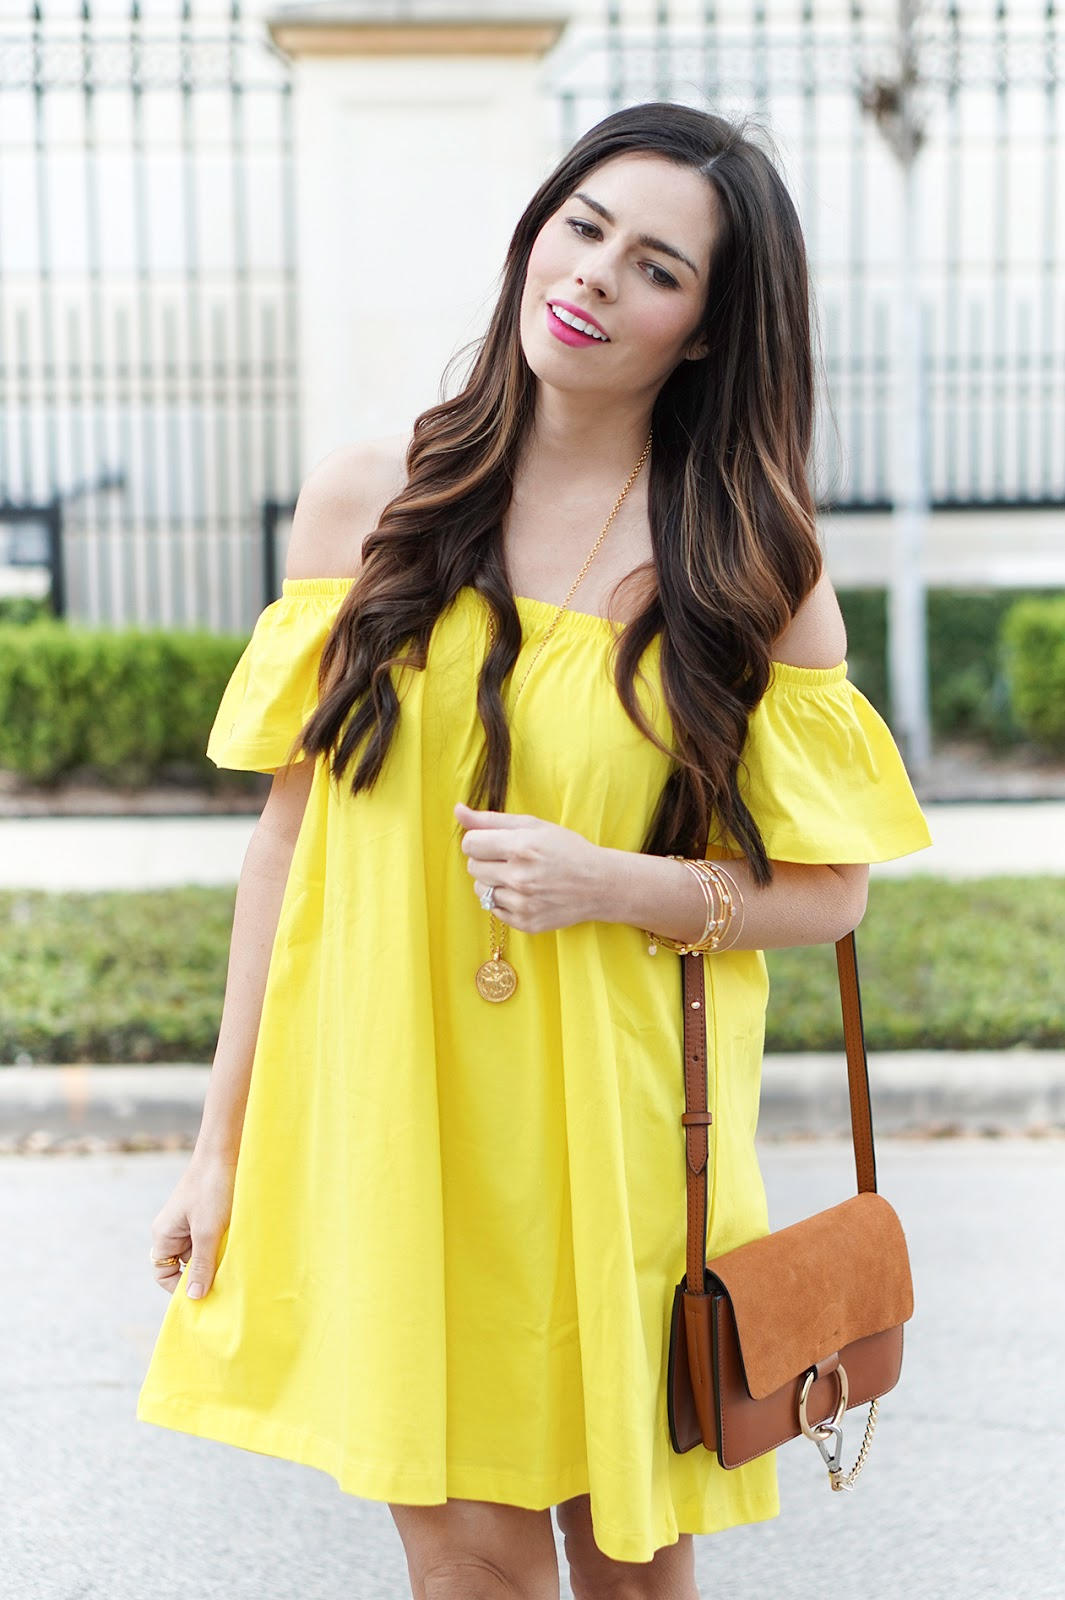 Off the shoulder yellow dress - Flaunt and Center